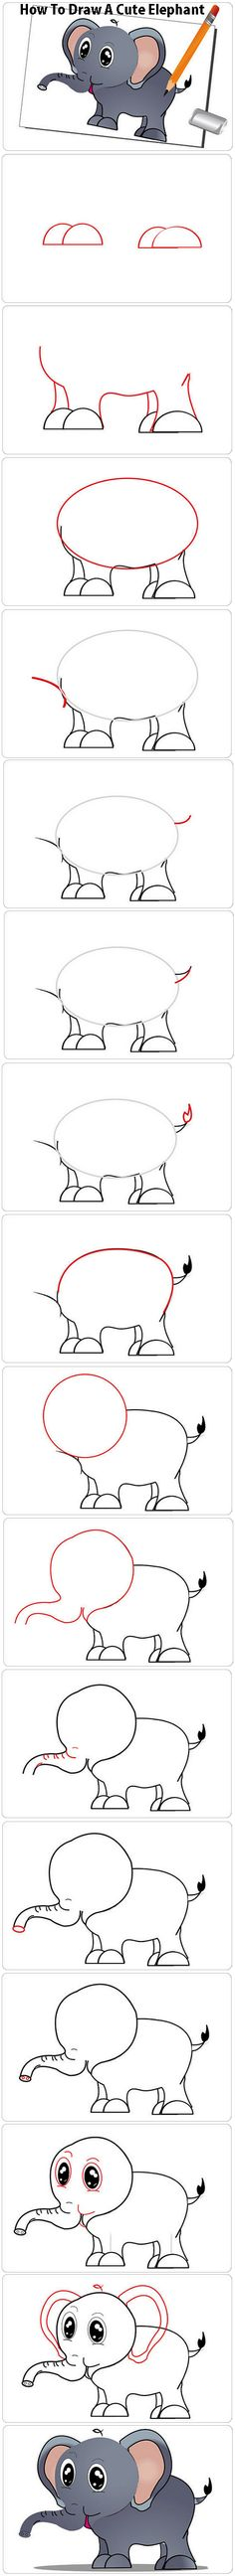 How to Draw a Elephant For Kids, Step by StepHow To Draw A Cute Elephant  http://www.wikihow.com/Draw-a-Cute-Elephant